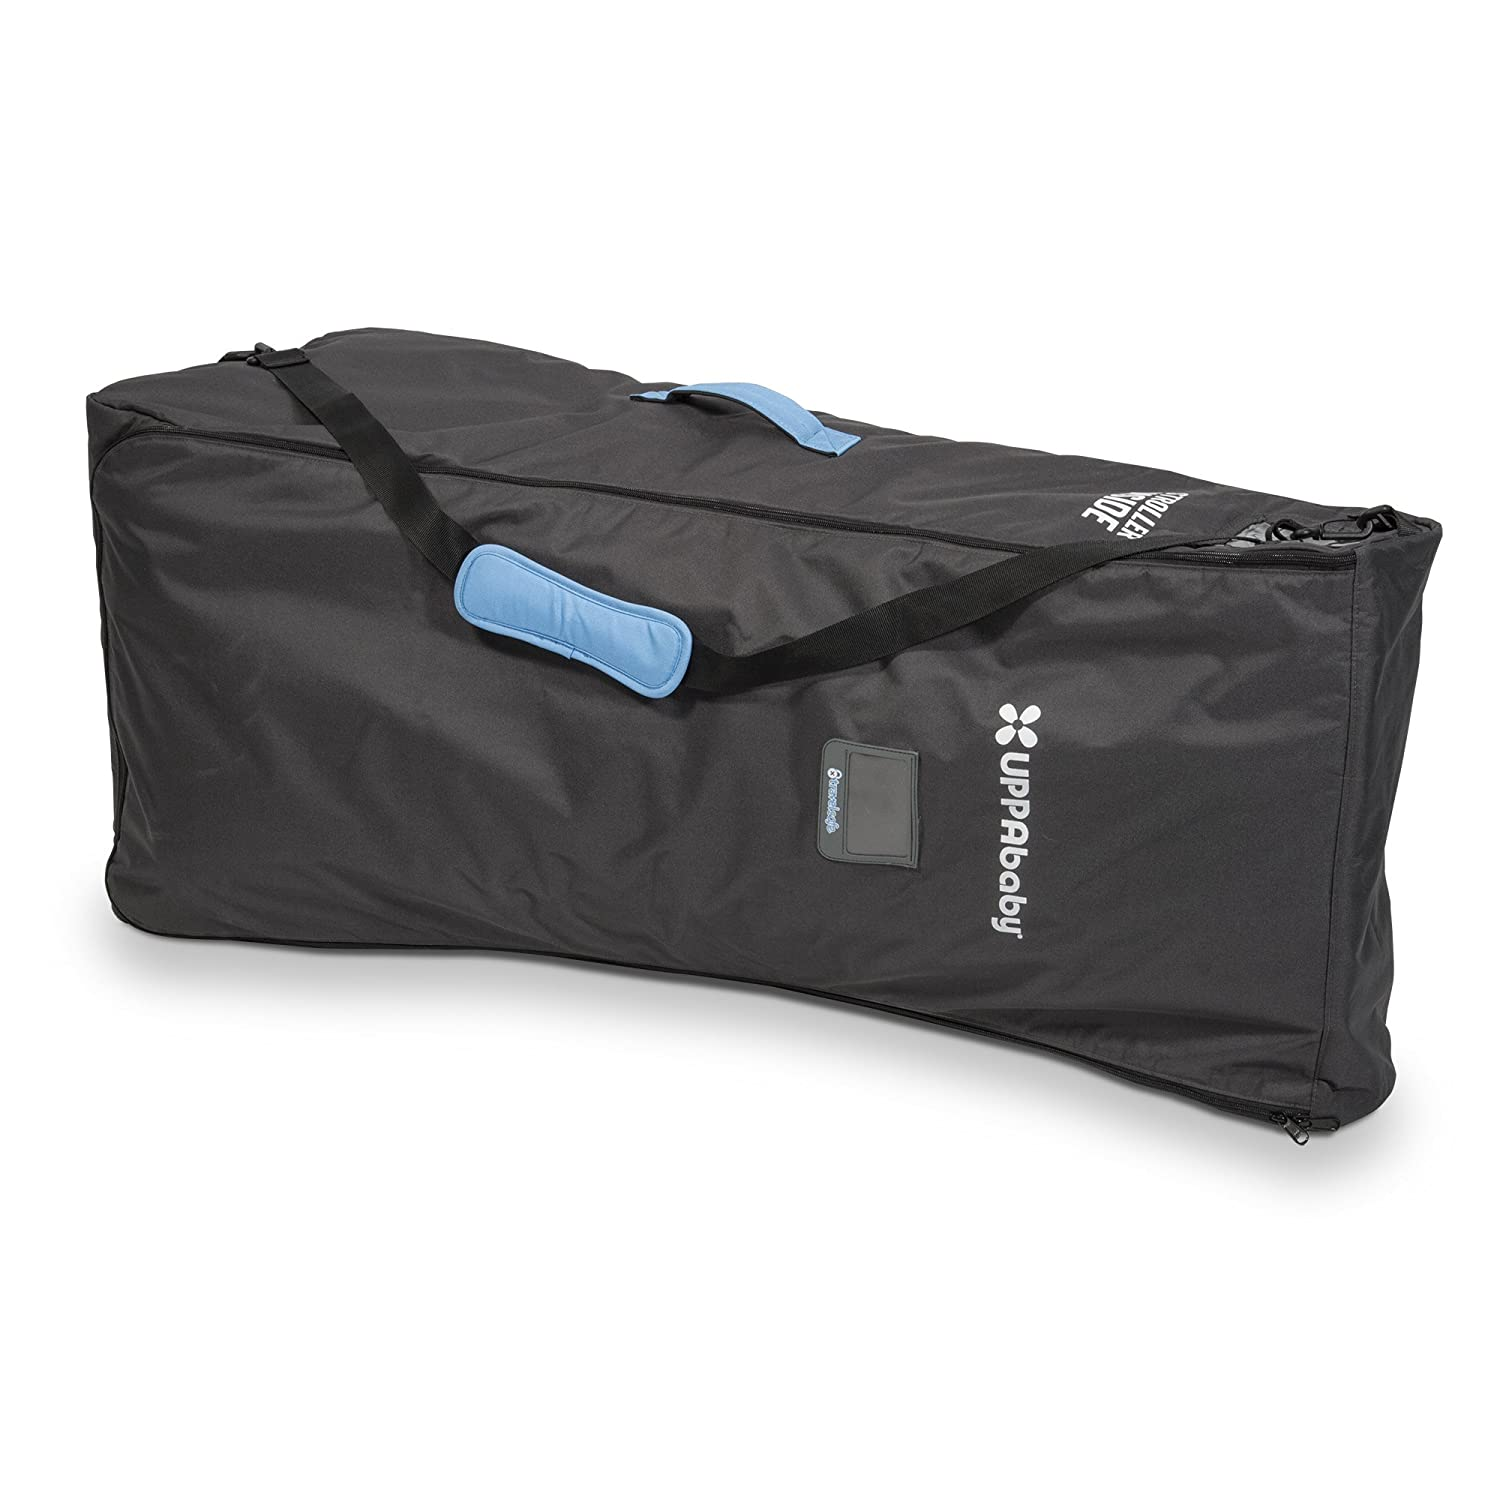 UPPAbaby G-LINK Travel Bag with TravelSafe 0271